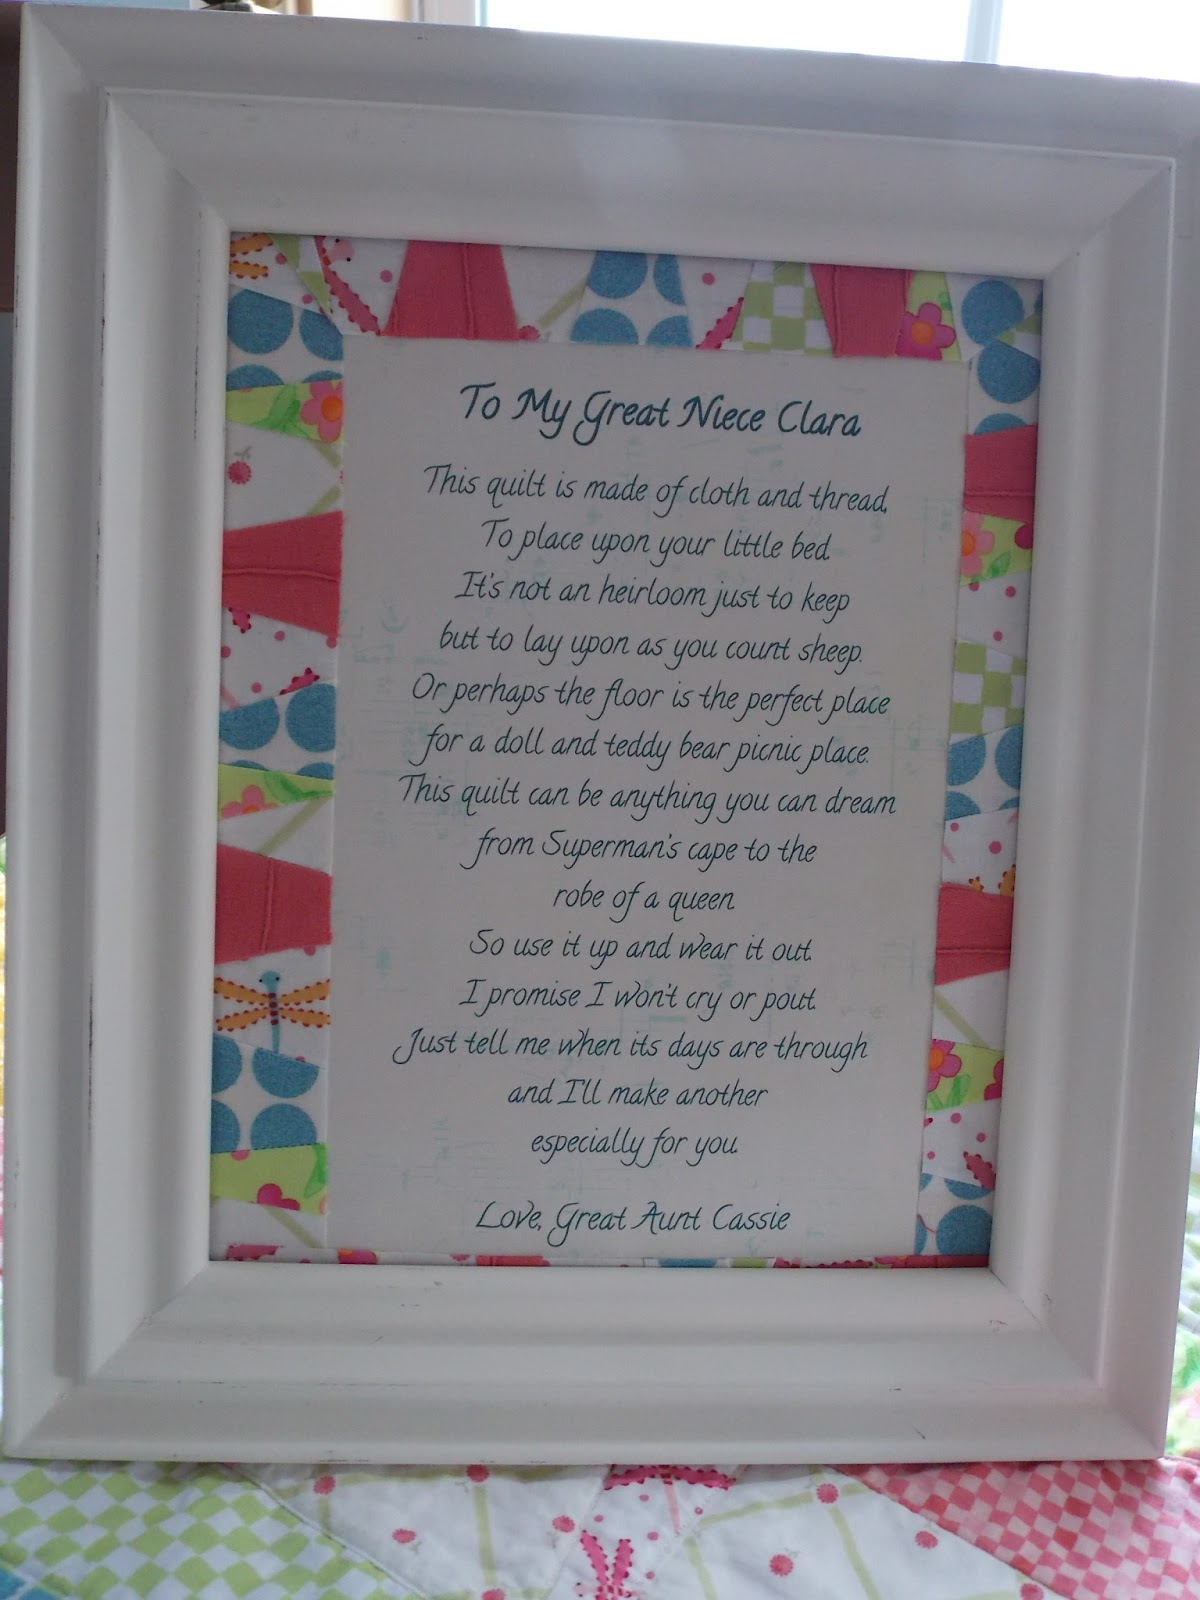 Once Upon A Rose Garden: A Quilt & Poem for Baby Clara : baby quilt poem - Adamdwight.com